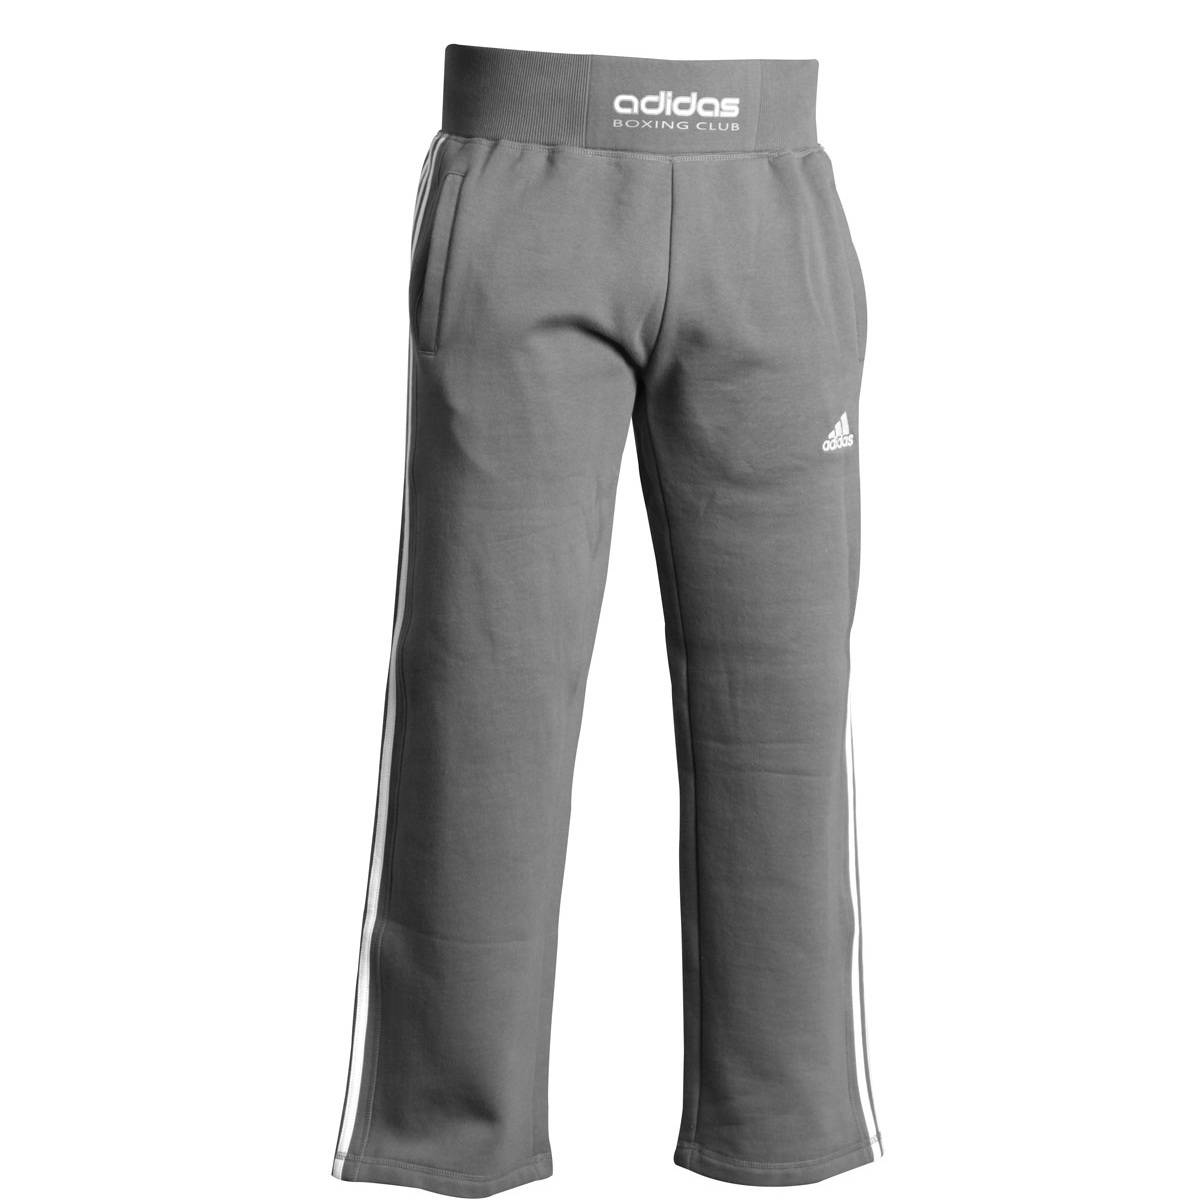 ����� ���������� Adidas Training Pant Boxing Club ����� - - adiTB262